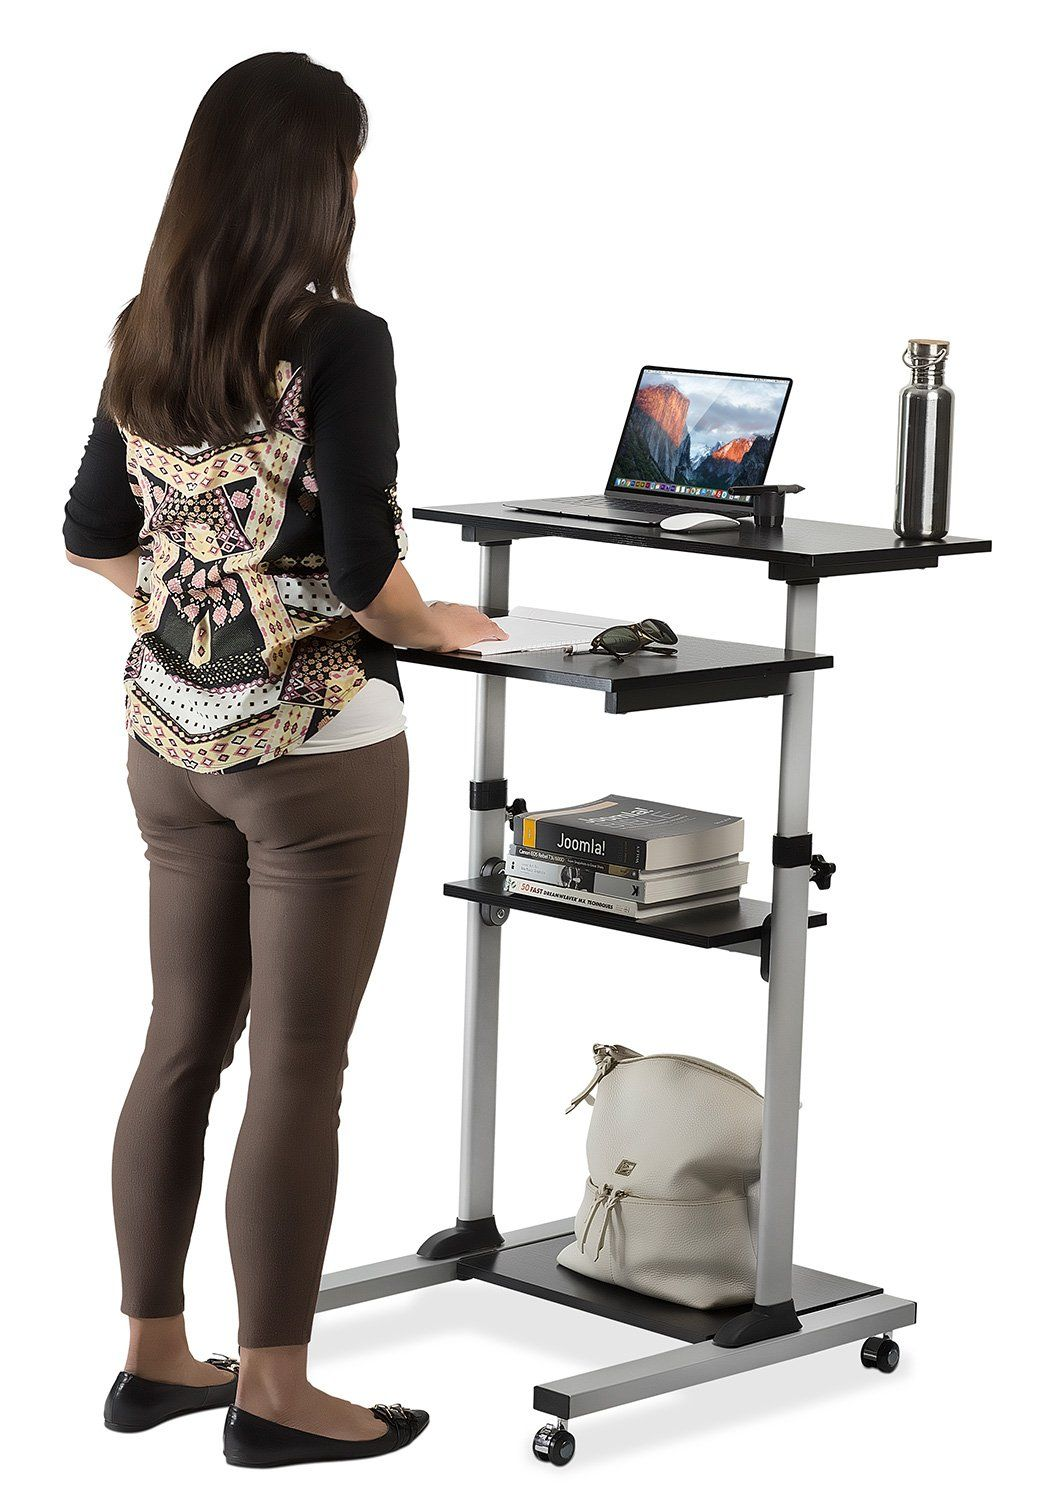 sale retailer 0b276 7e98a Mount-It! Mobile Stand Up Desk / Height Adjustable Computer ...